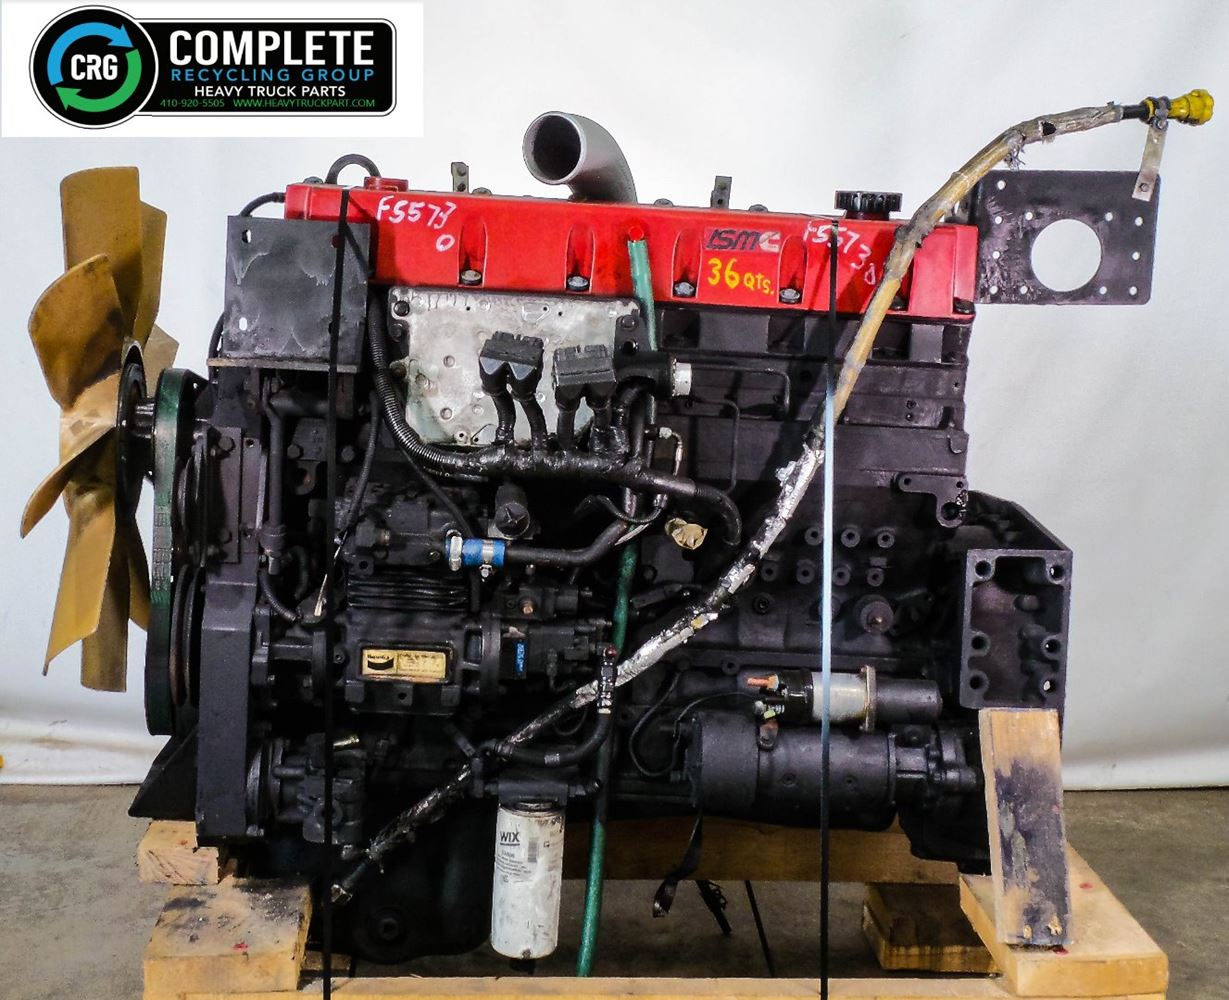 2001 CUMMINS ISM ENGINE ASSEMBLY TRUCK PARTS #679830